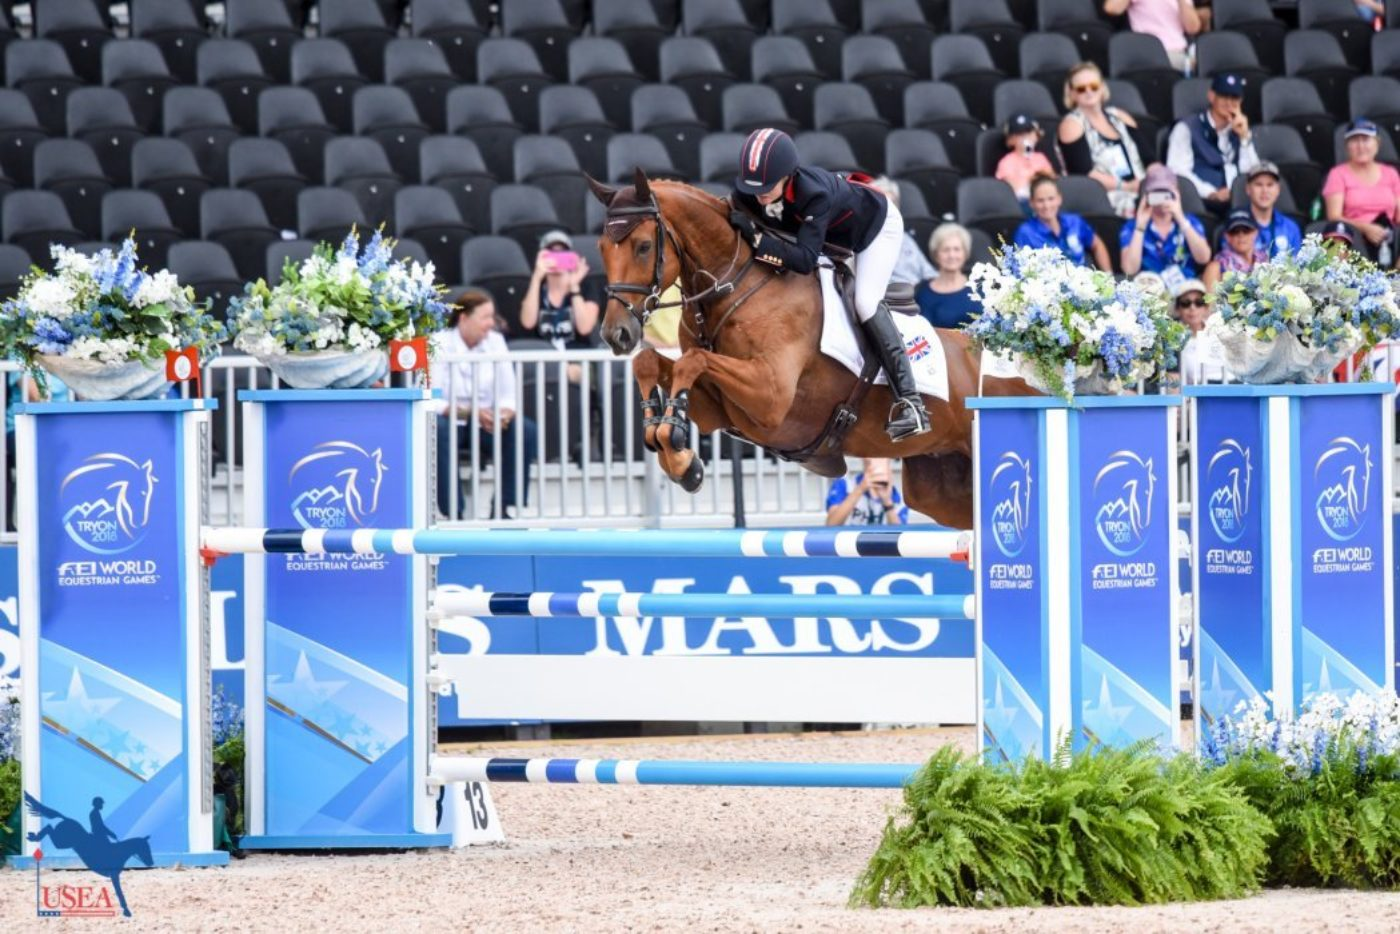 10th - Piggy French and Quarrycrest Echo (GBR)